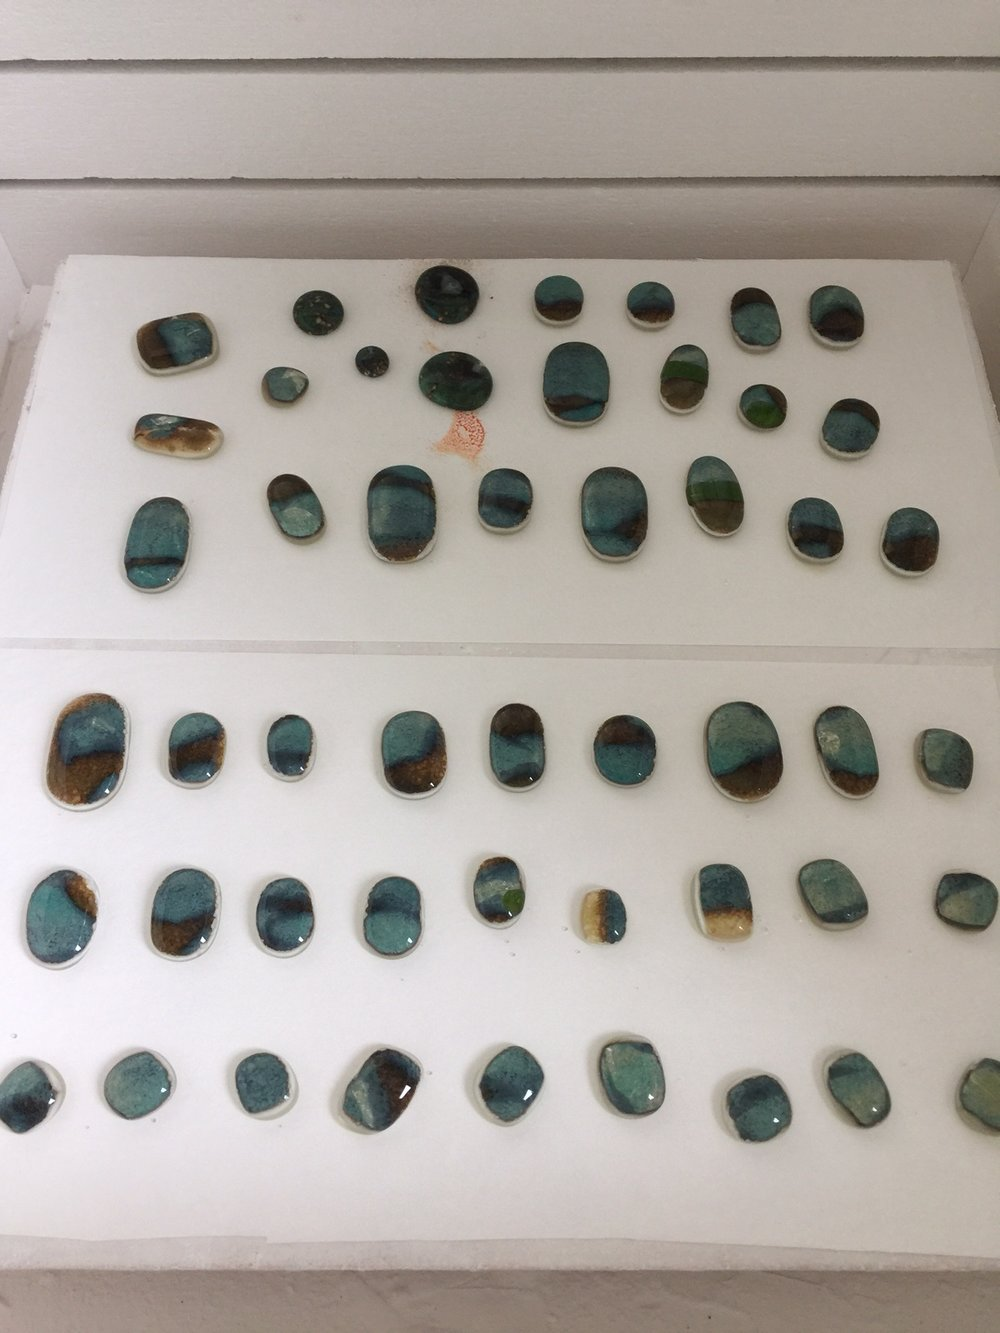 The finished stones are ready to be set into jewelry!